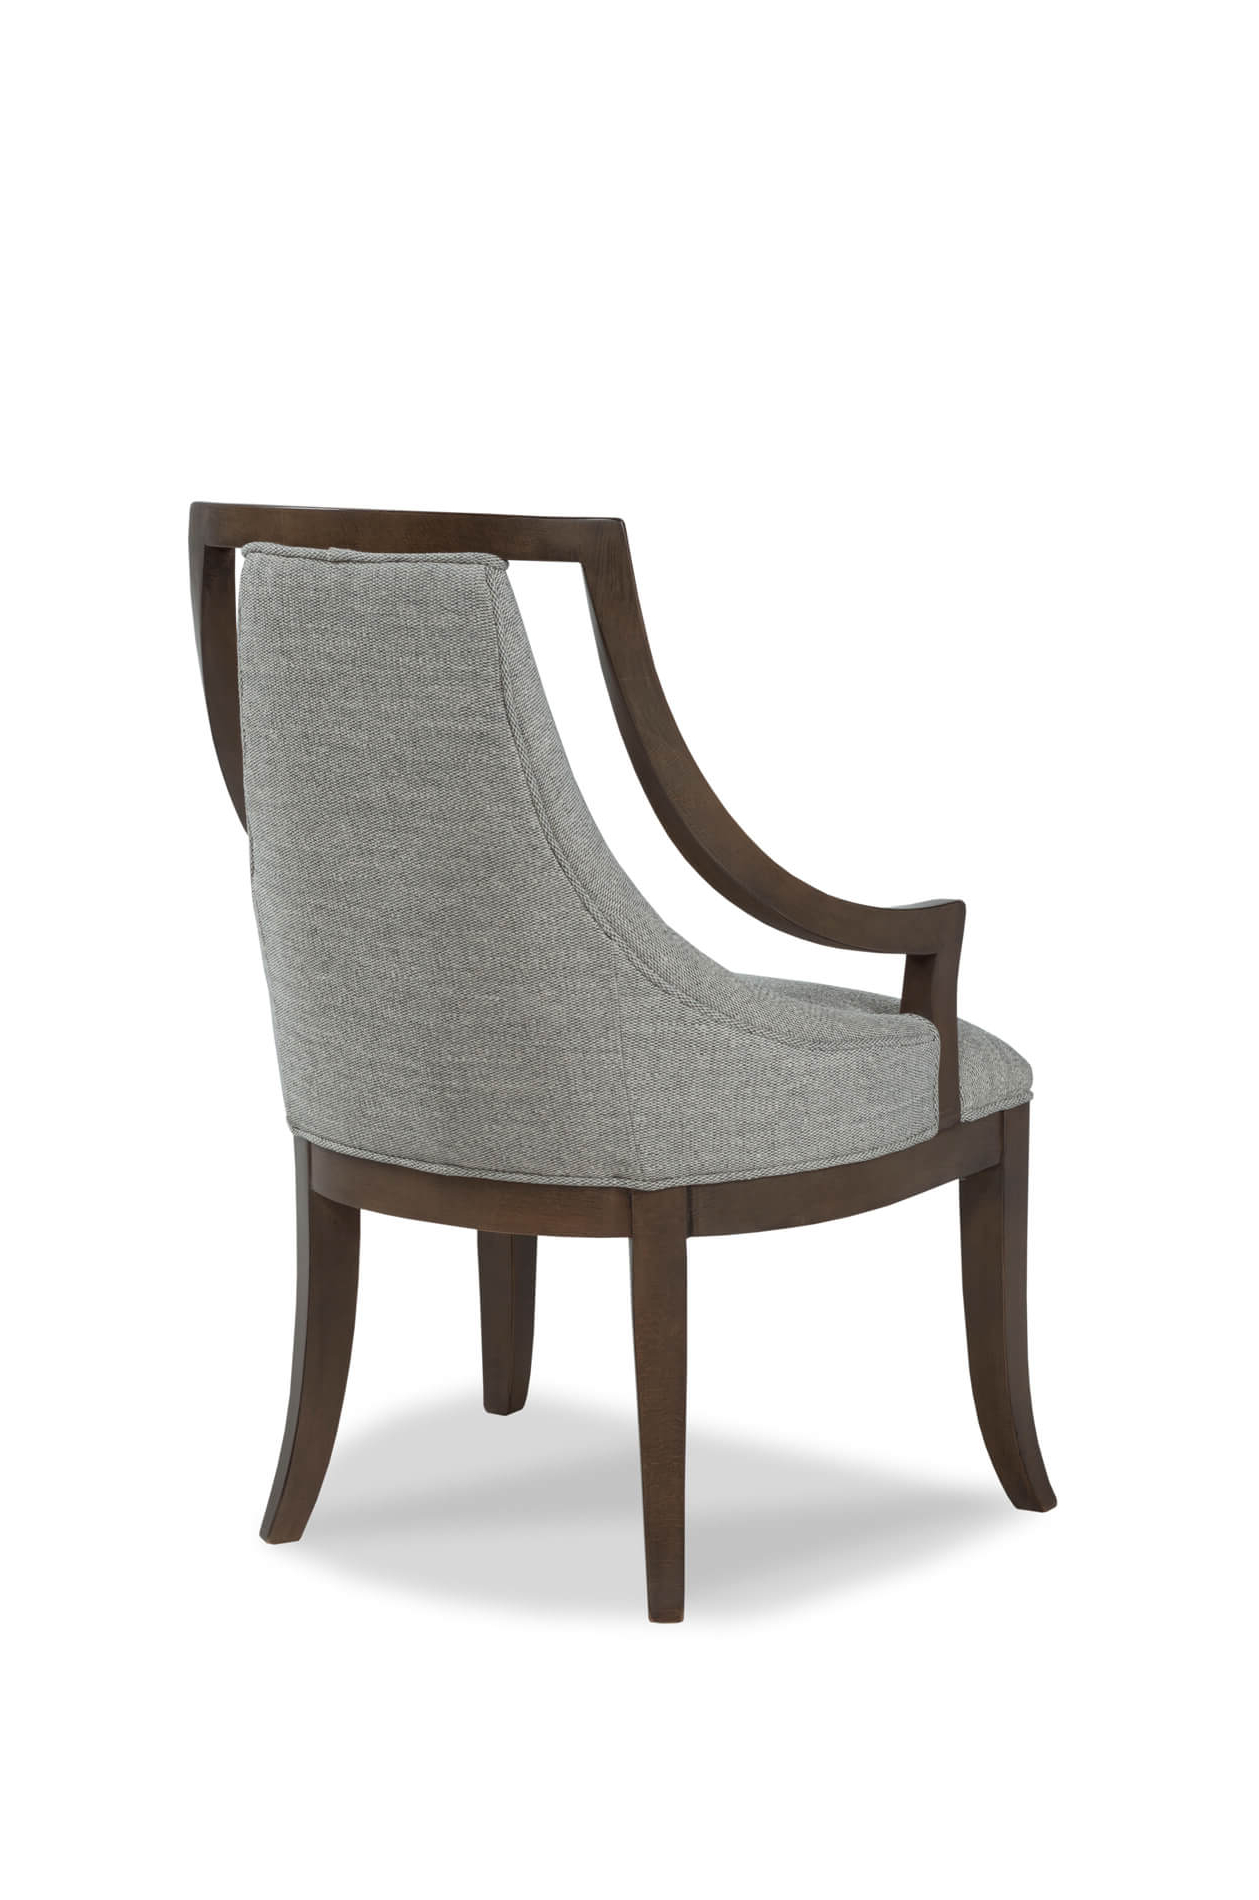 Widely Used Caldwell Upholstered Dining Arm Chair Throughout Caldwell Armchairs (View 8 of 20)